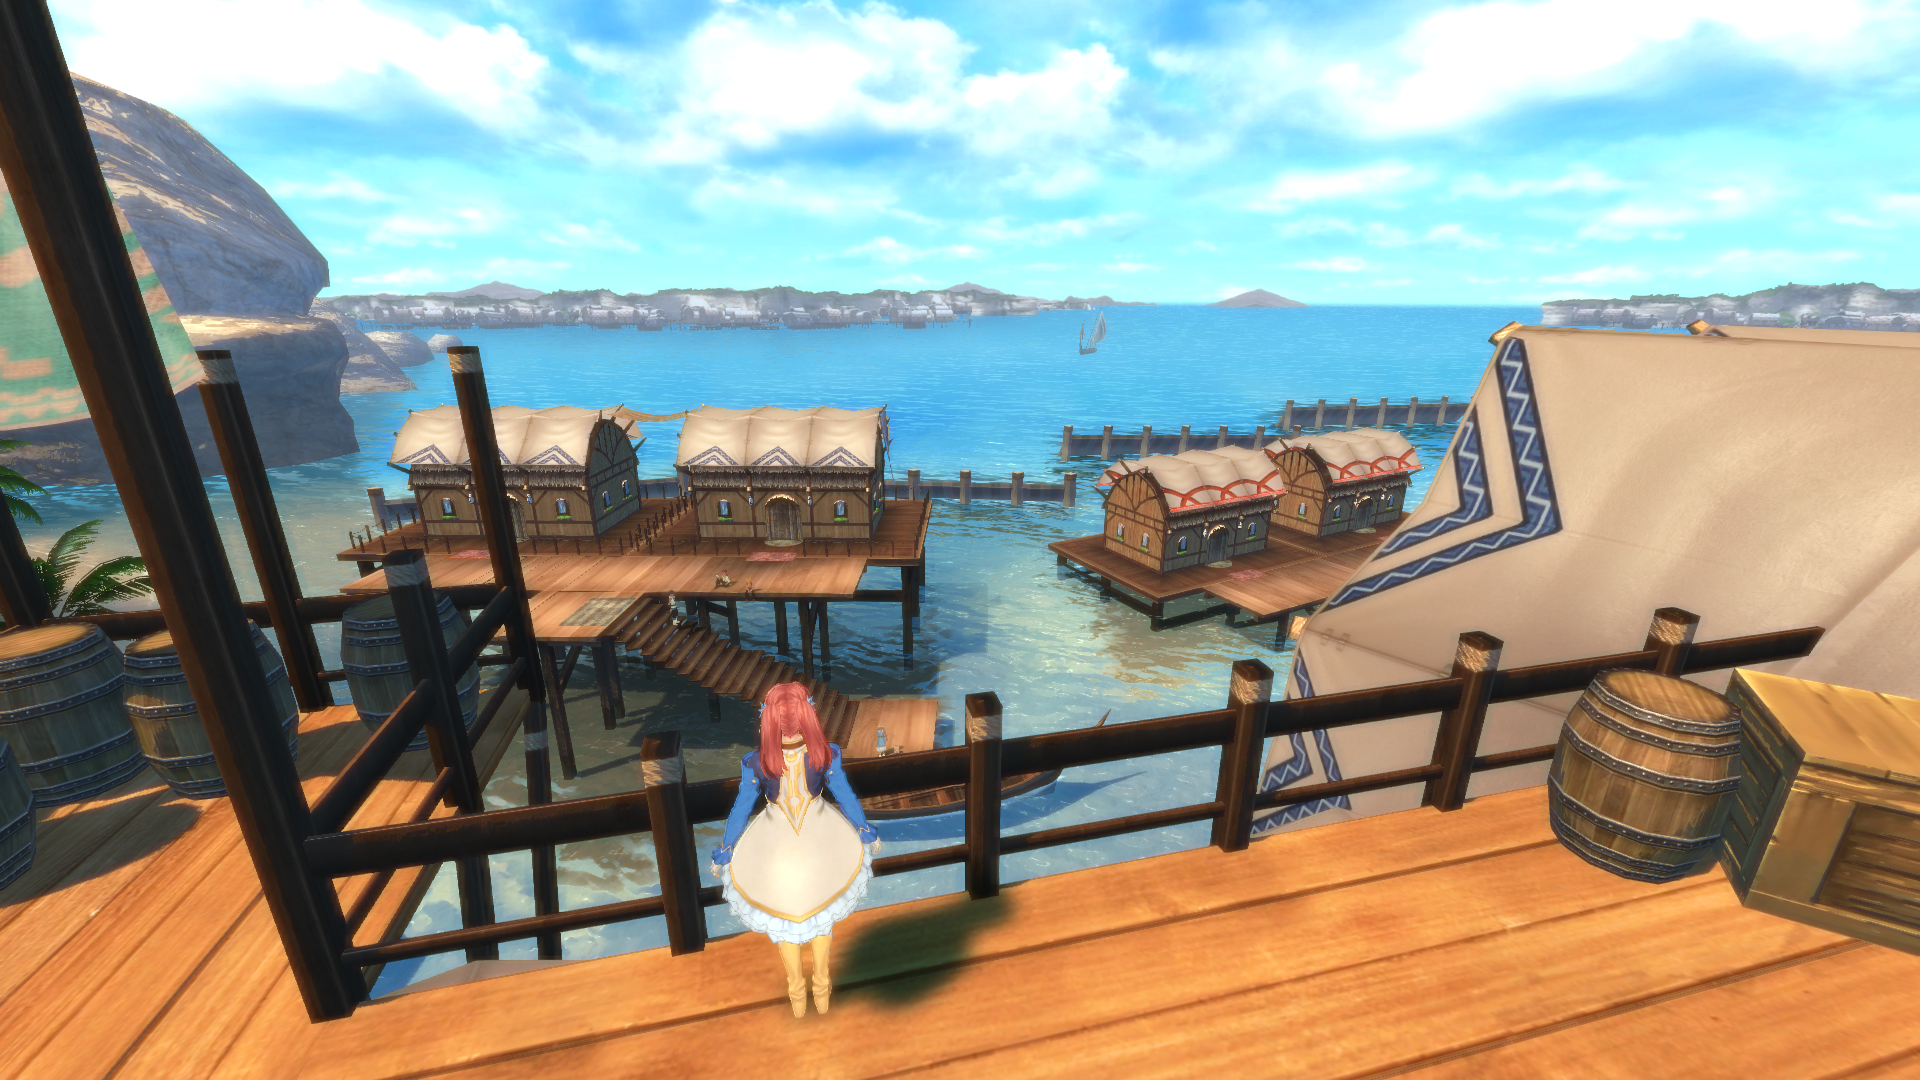 New Tales Of Berseria Details Surfaces